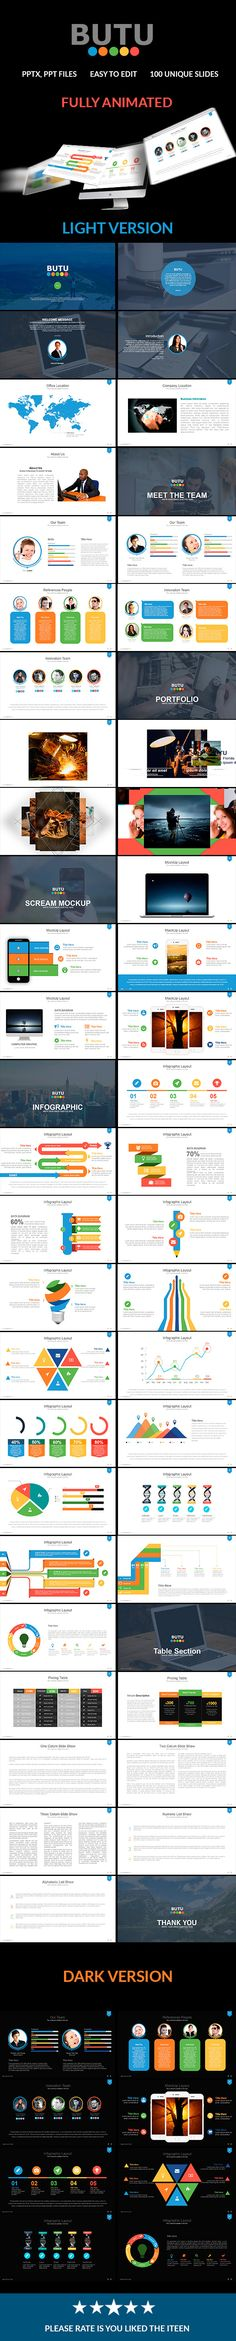 Butu Powerpoint Presentation (PowerPoint Templates)